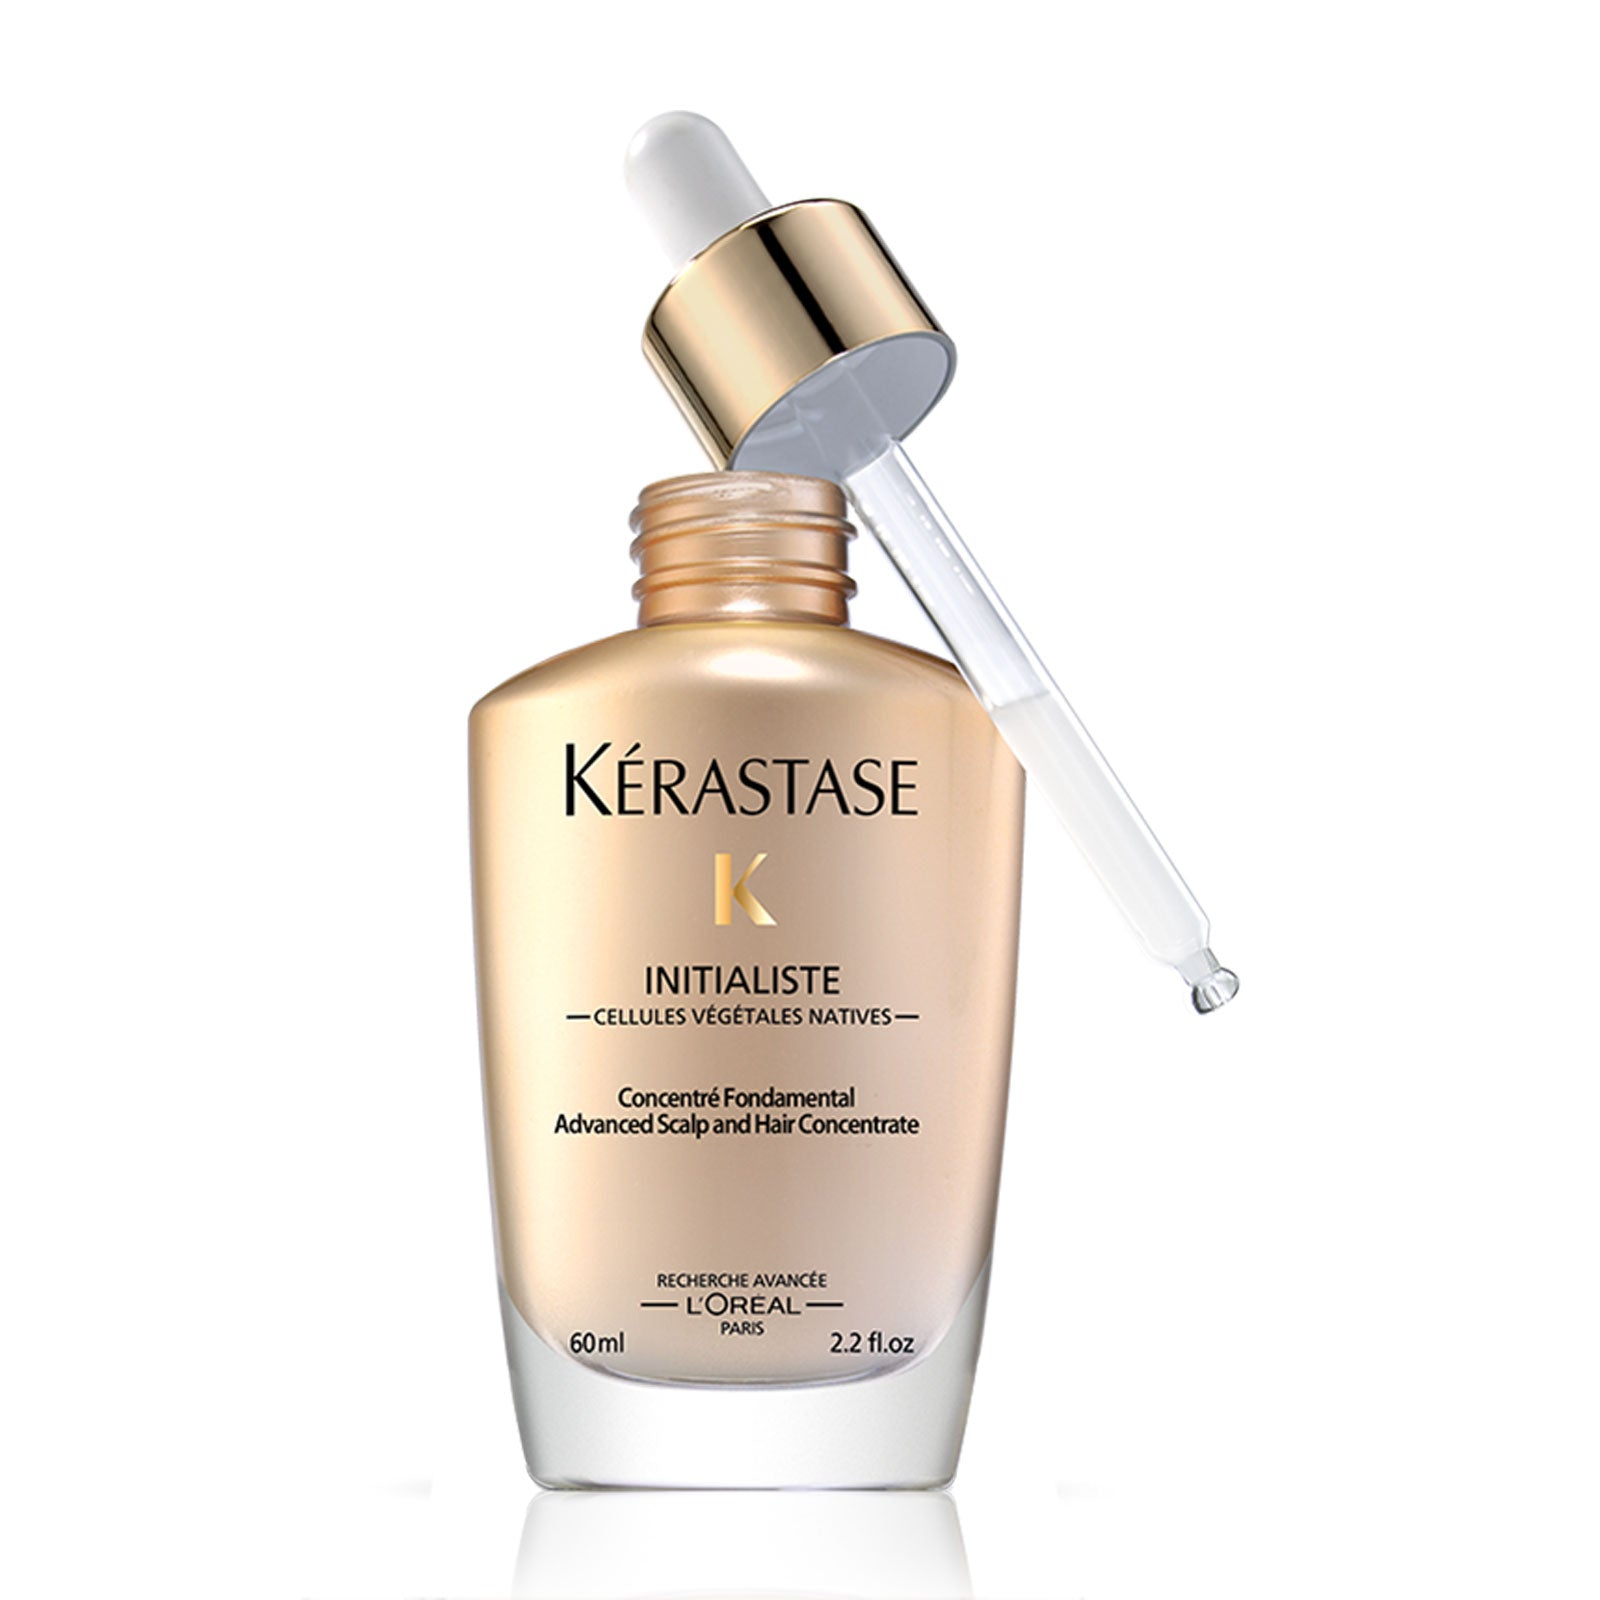 Kérastase INITIALISTE Advanced Scalp and Hair Concentrate 60ml